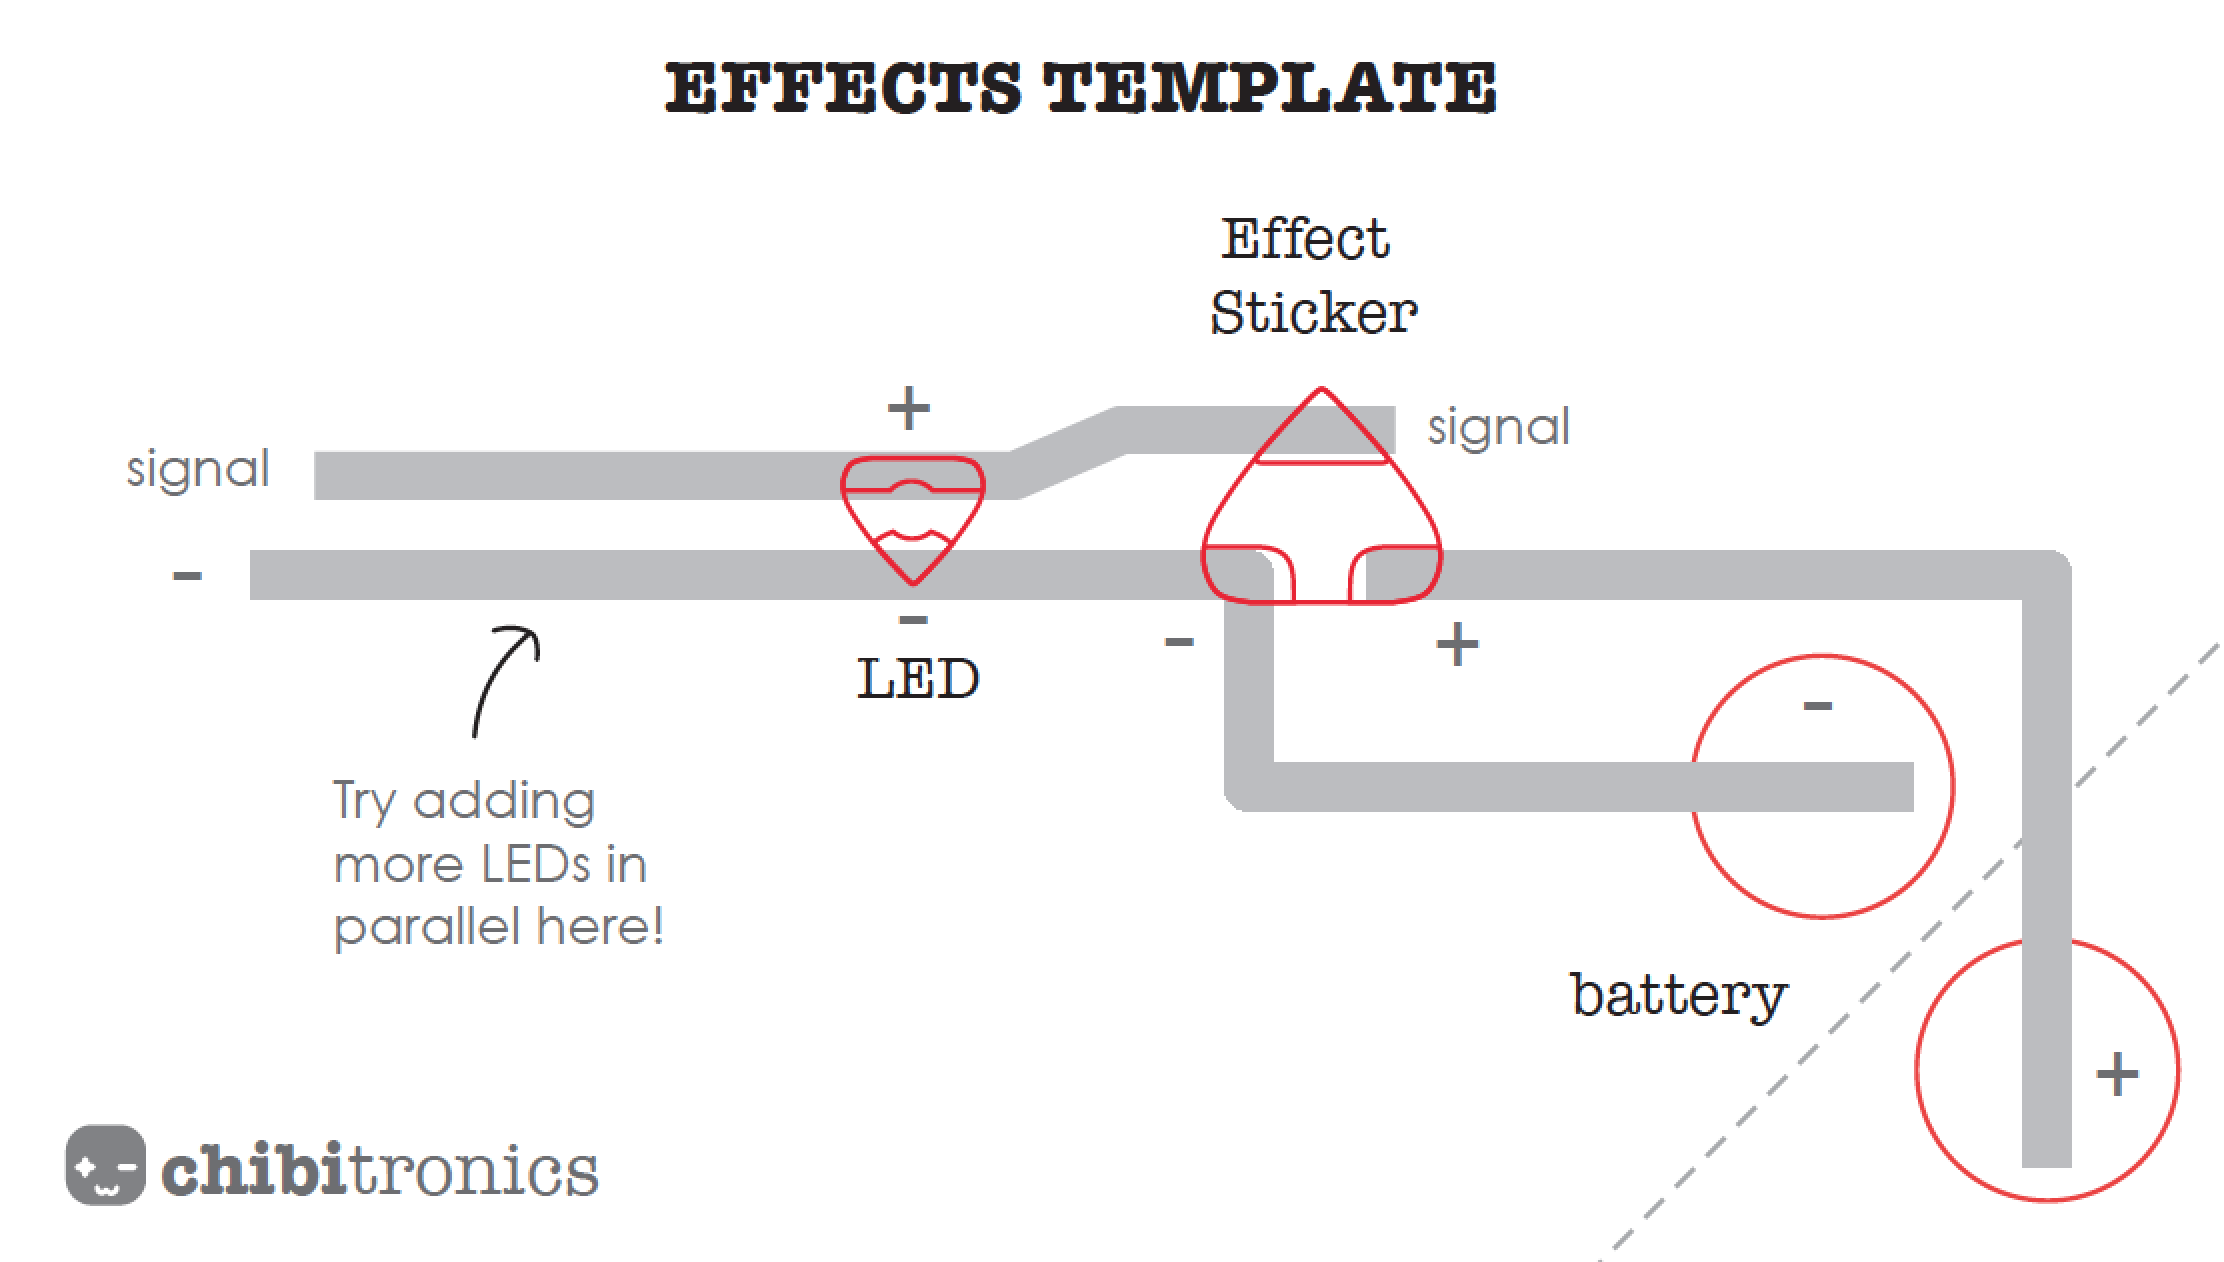 Explore Different Light Effects Chibitronics Designing Led Circuit Once The Is Complete And Working Have Students Quickly Share Them With Each Other You Could Use This Step As An Opportunity To Provoke